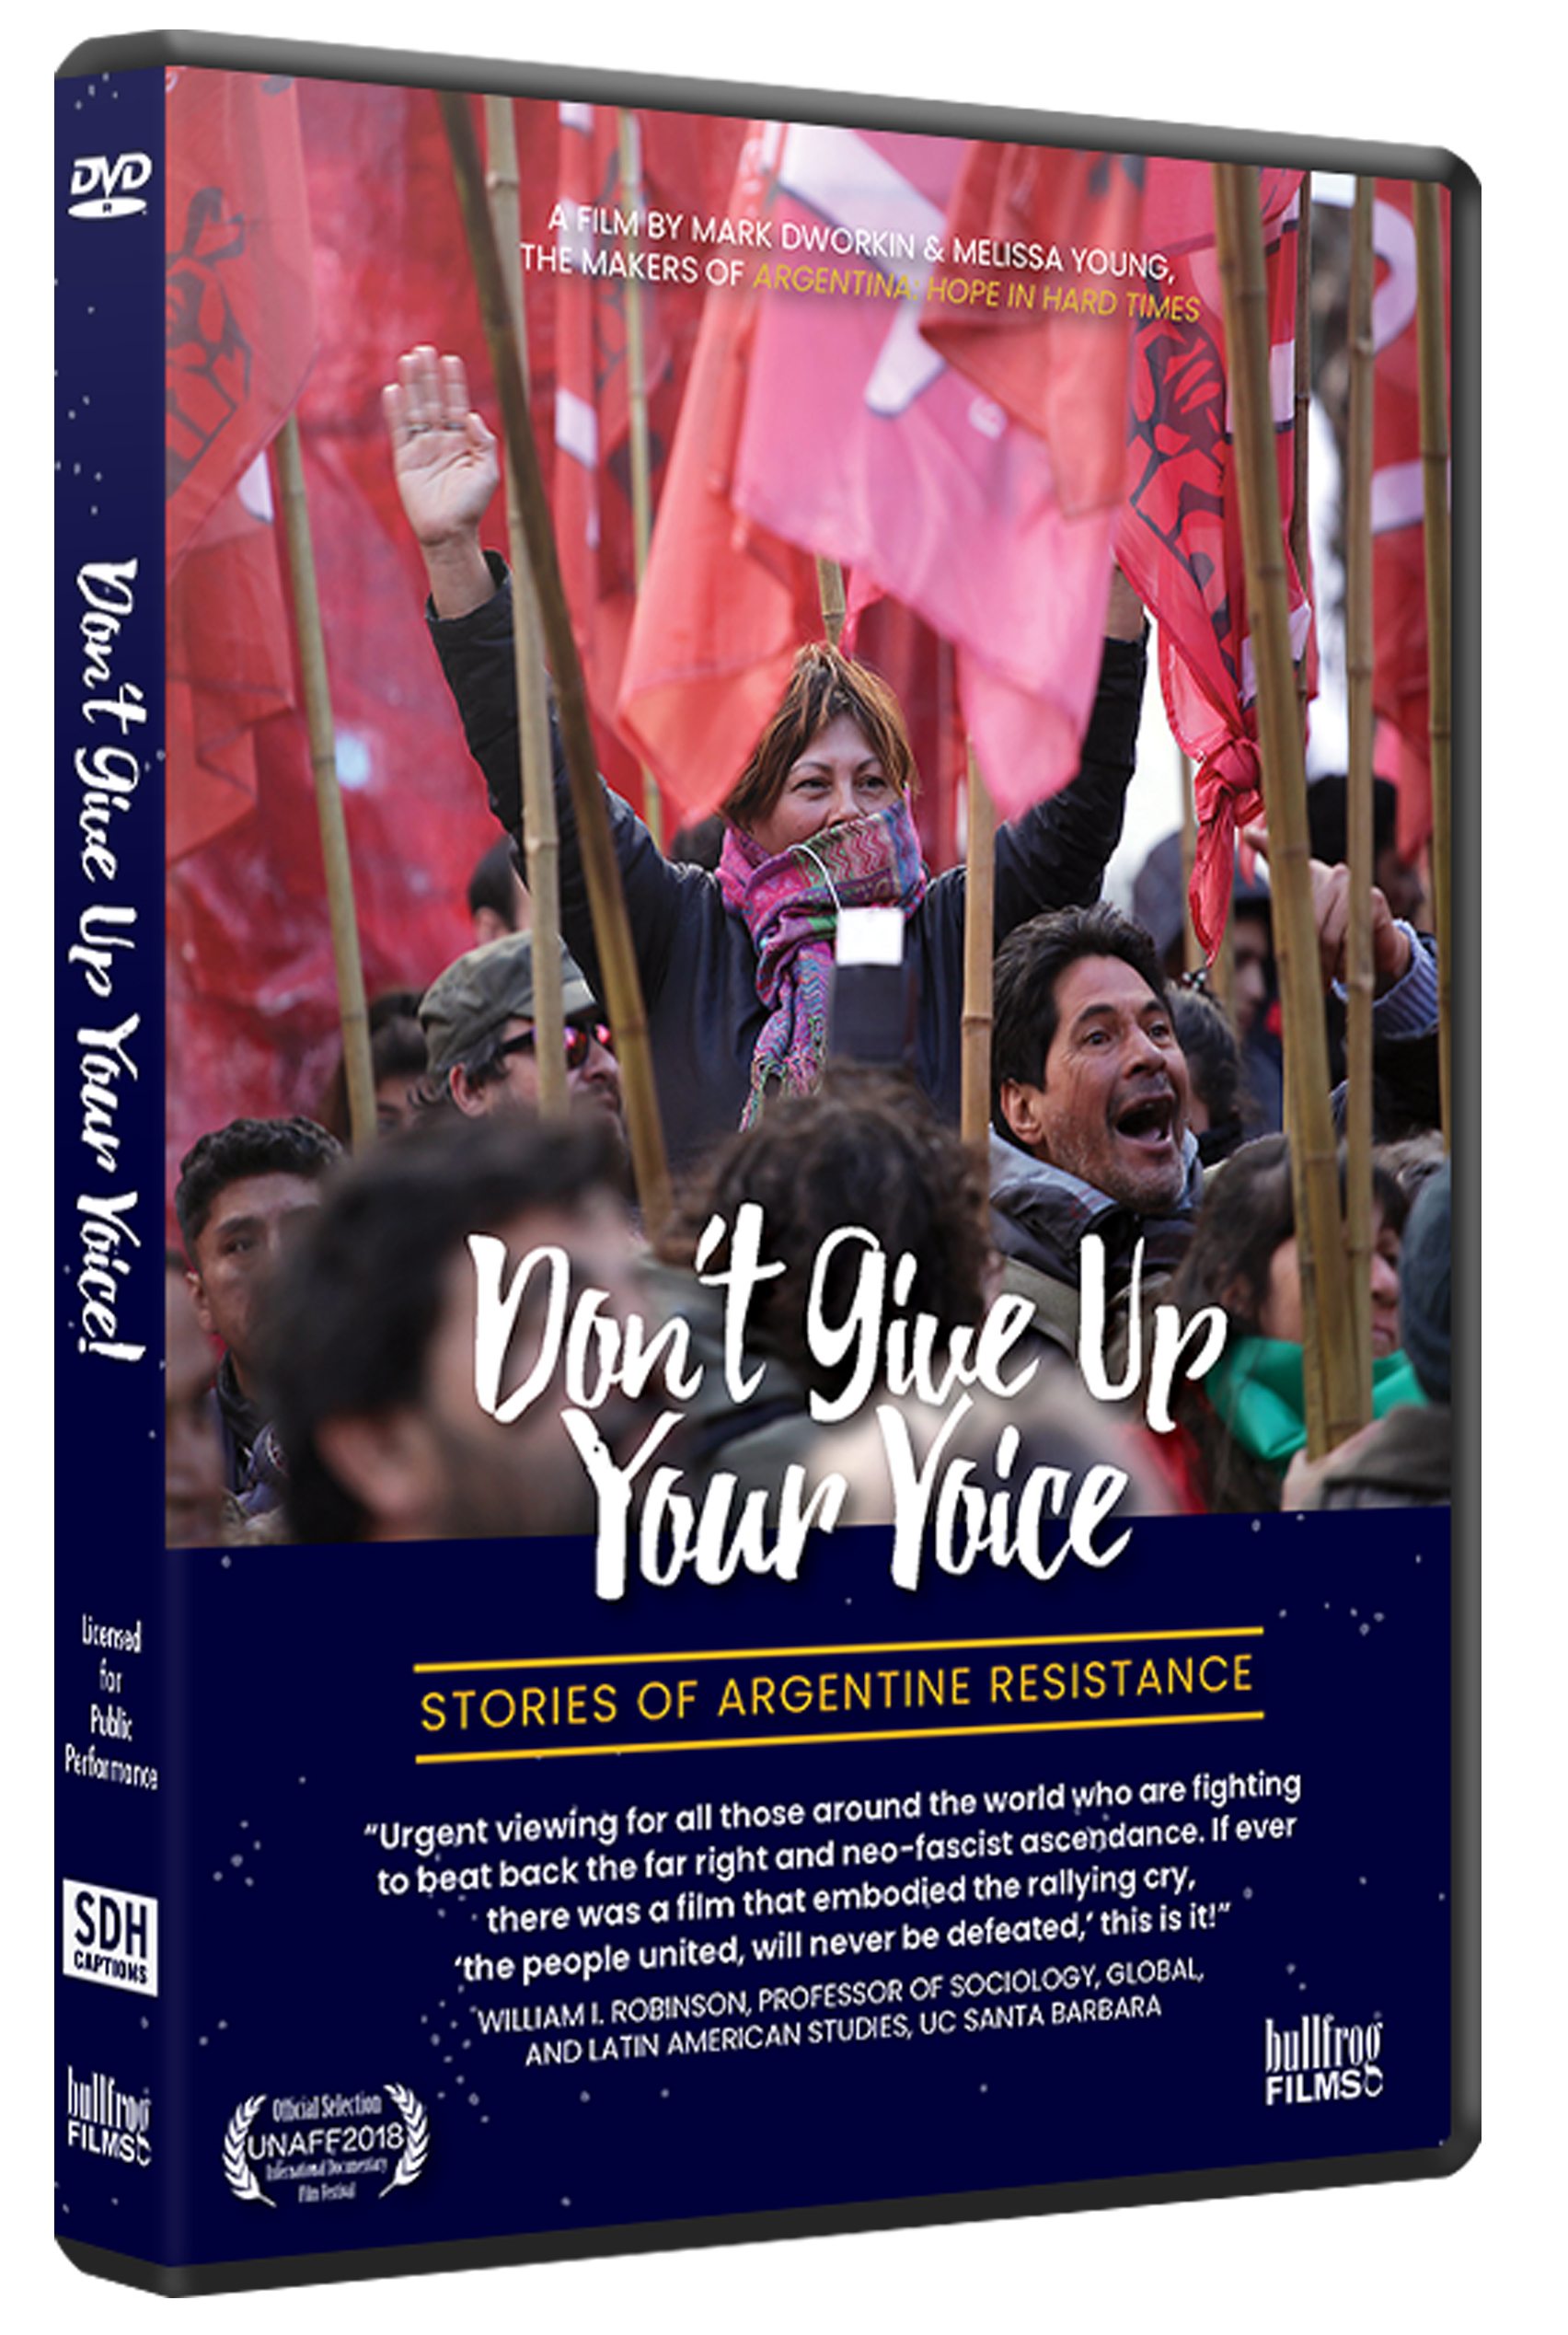 DON'T GIVE UP YOUR VOICE